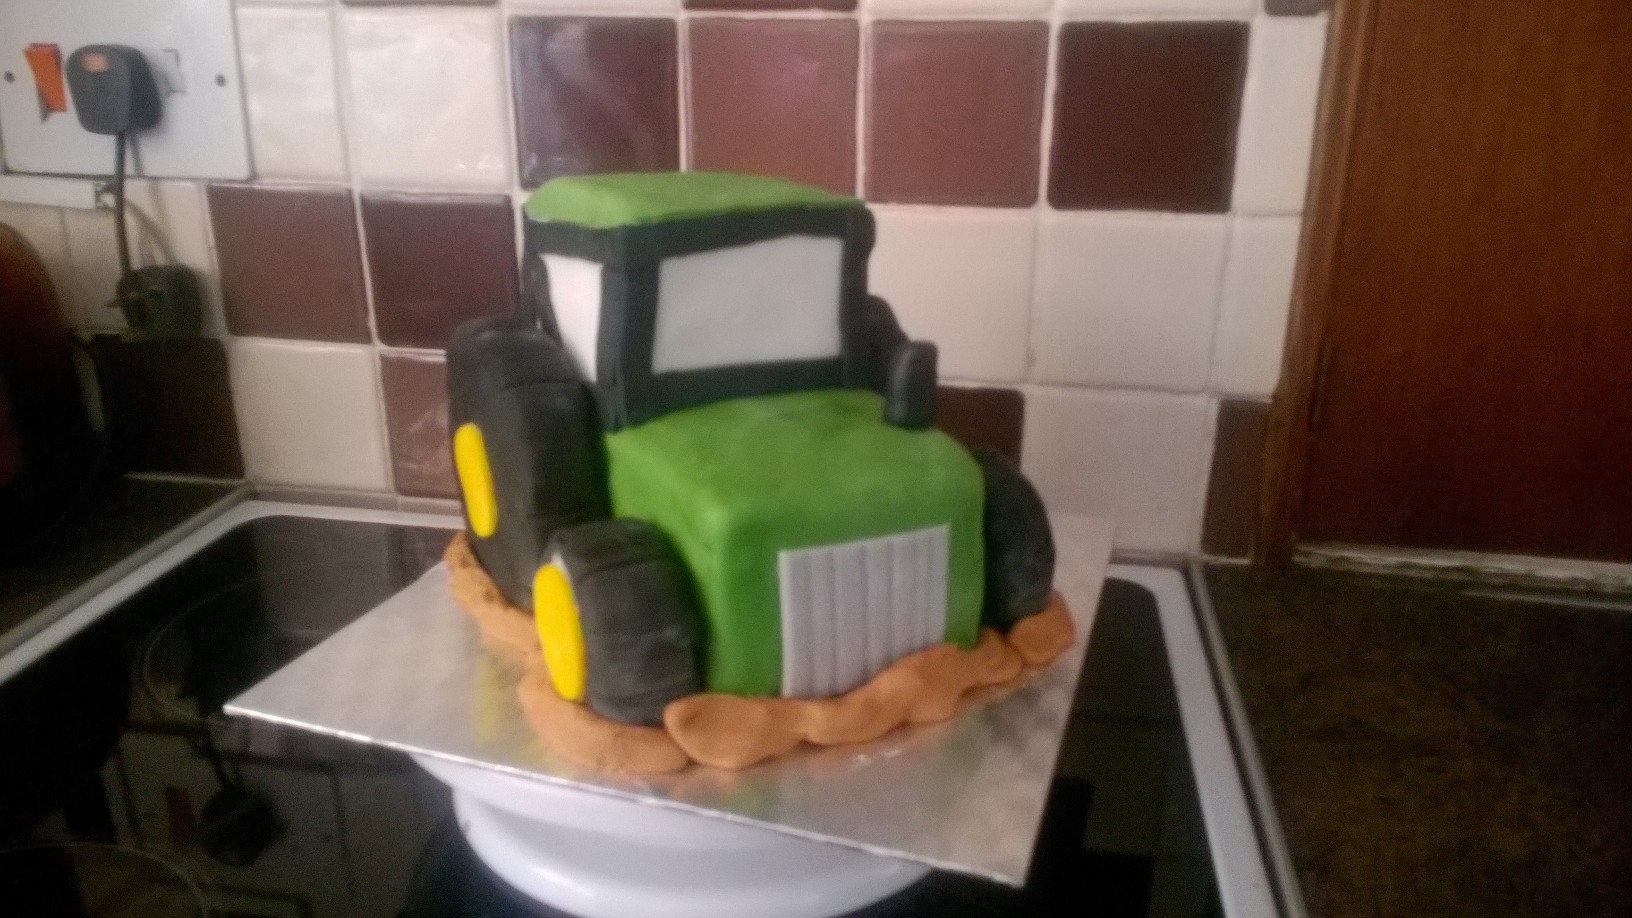 This Amazing 3D Tractor Cake Made For A Brilliant Birthday Gift Is Chocolate Sponge With Buttercream Filling